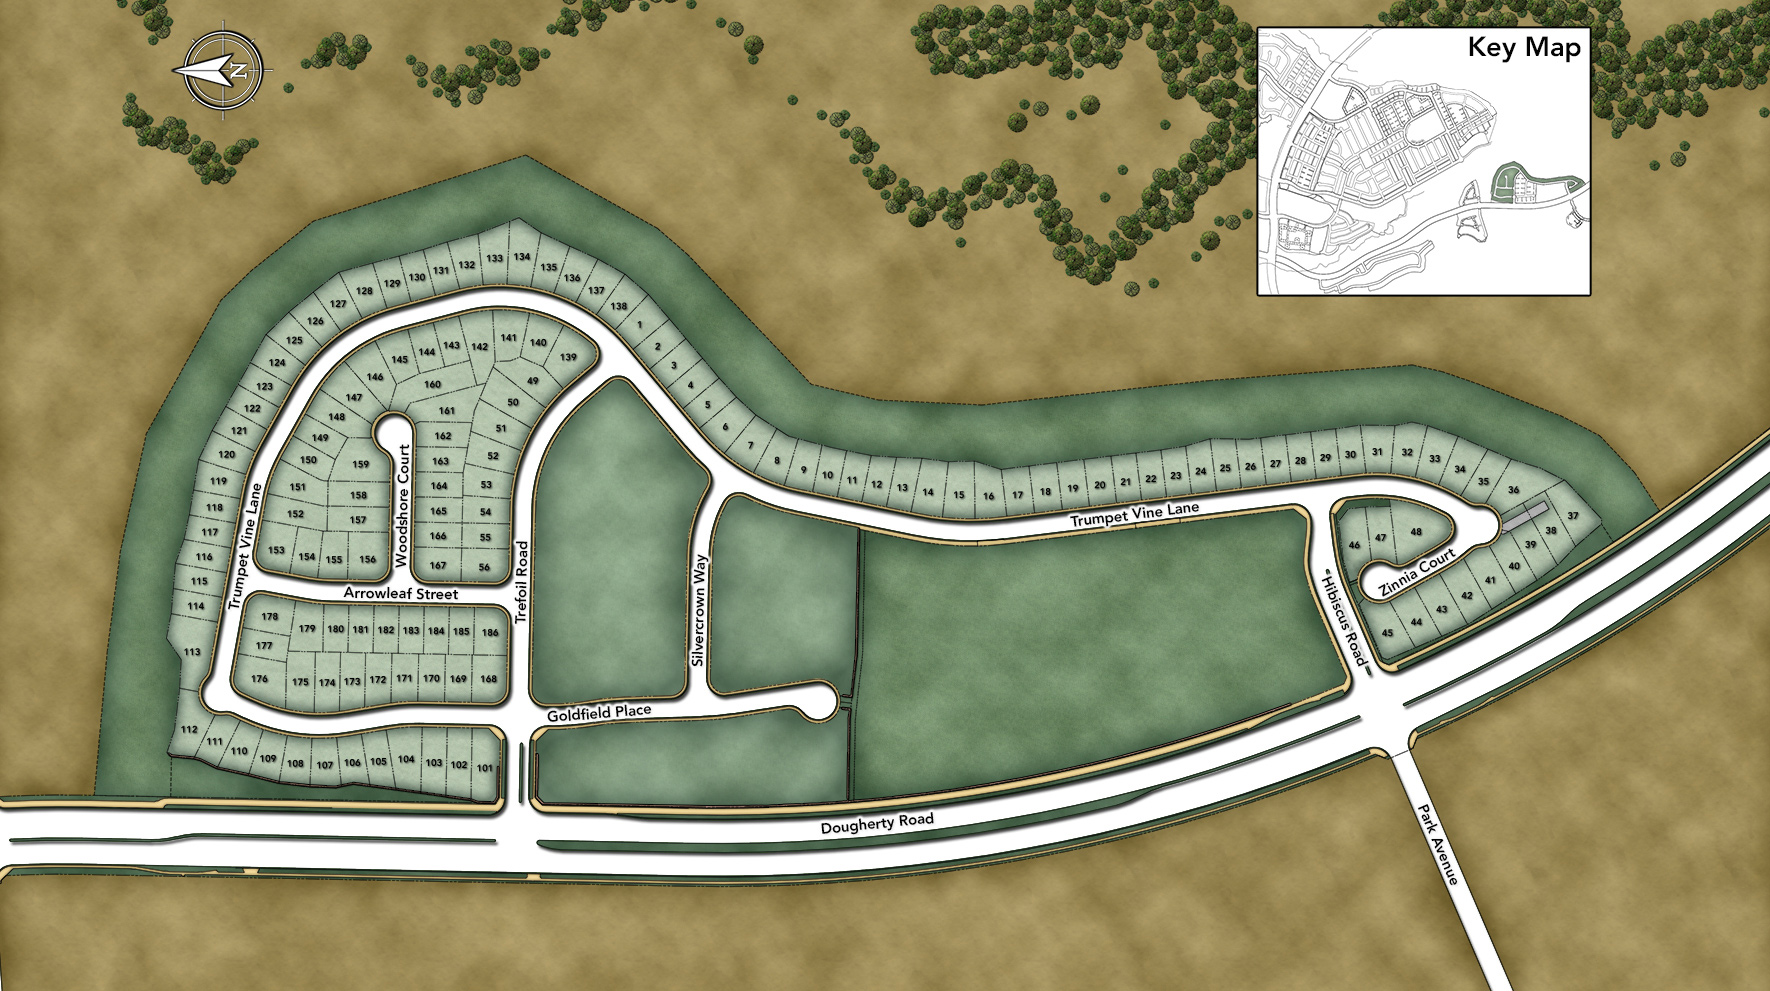 Serena at Gale Ranch Overall Site Plan